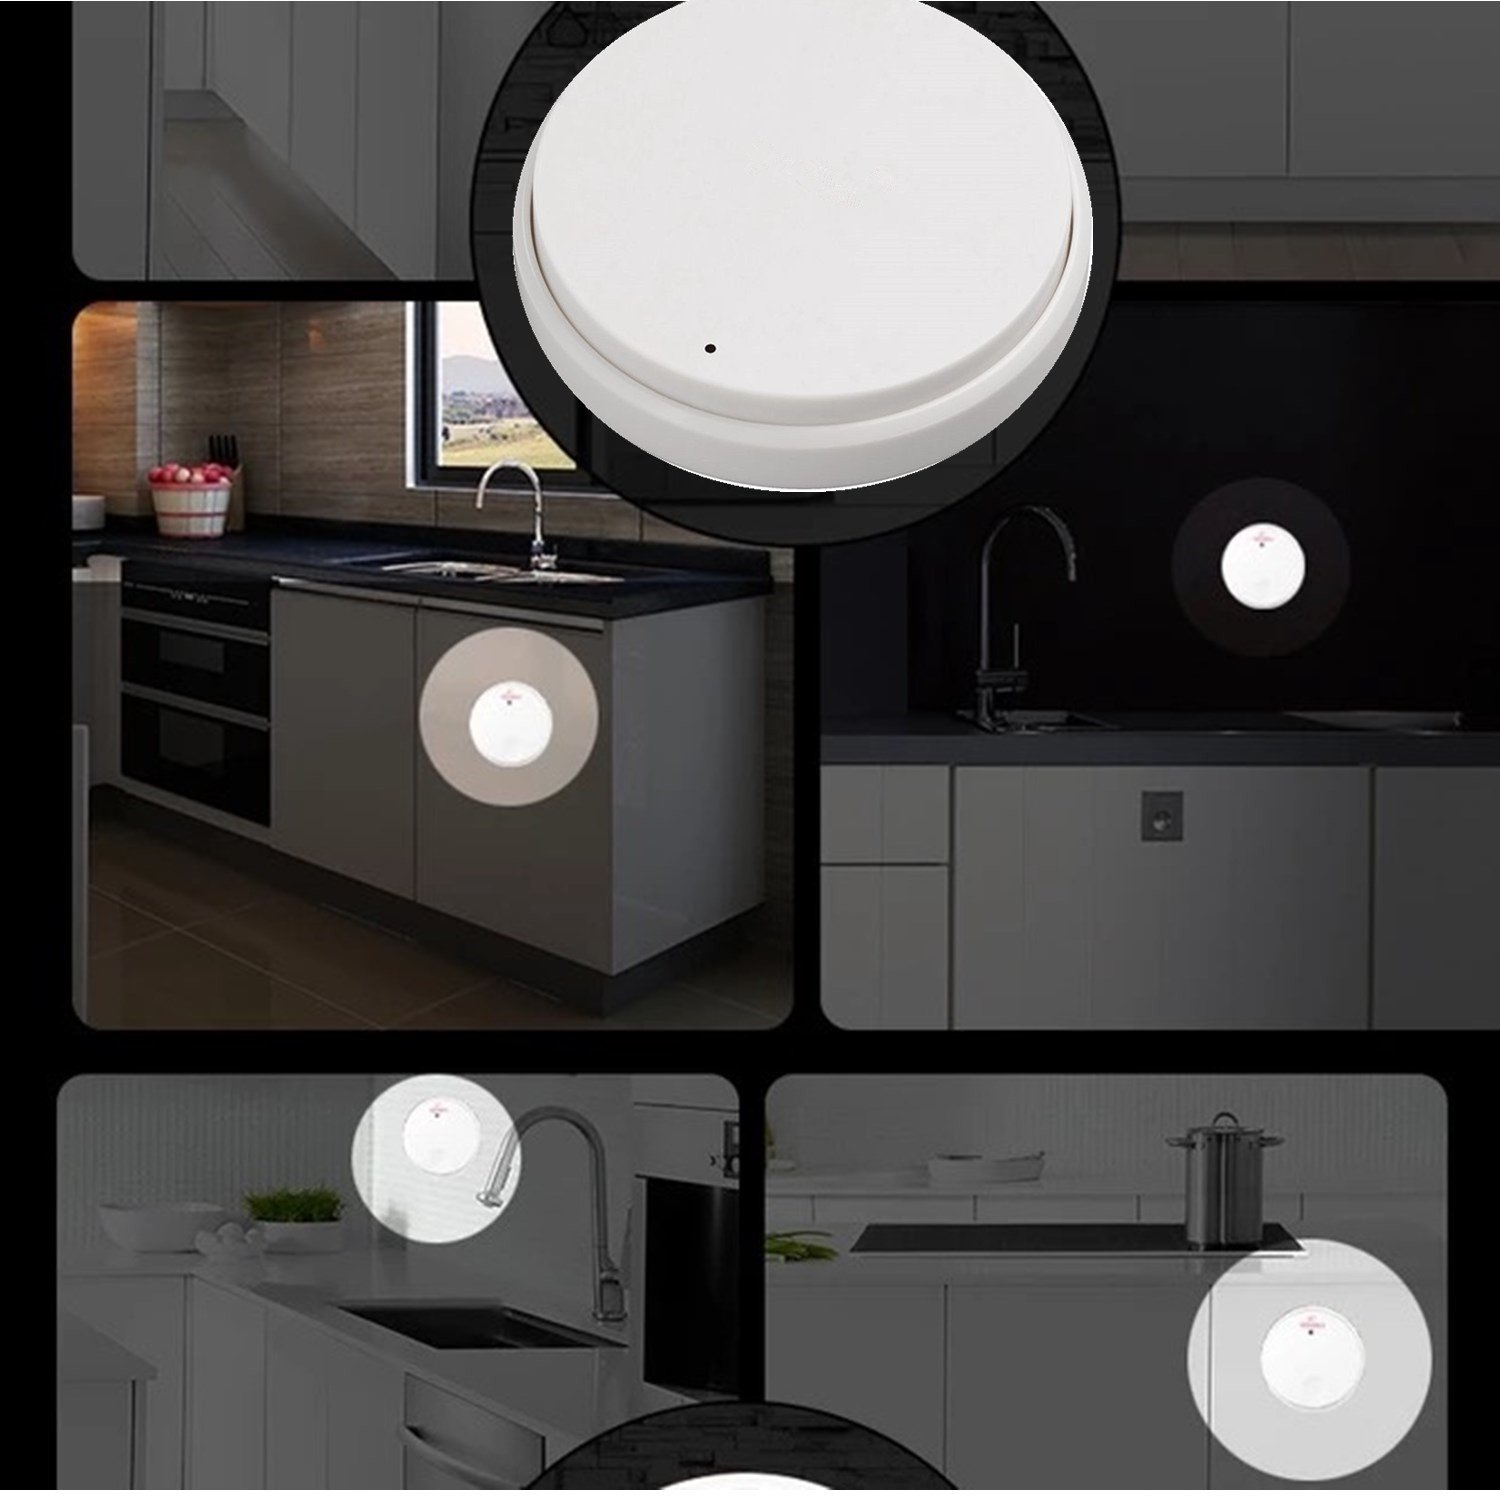 Garbage Disposal Wireless Switch Kit No Battery Wiring Self A To Powered Button For Counter Top